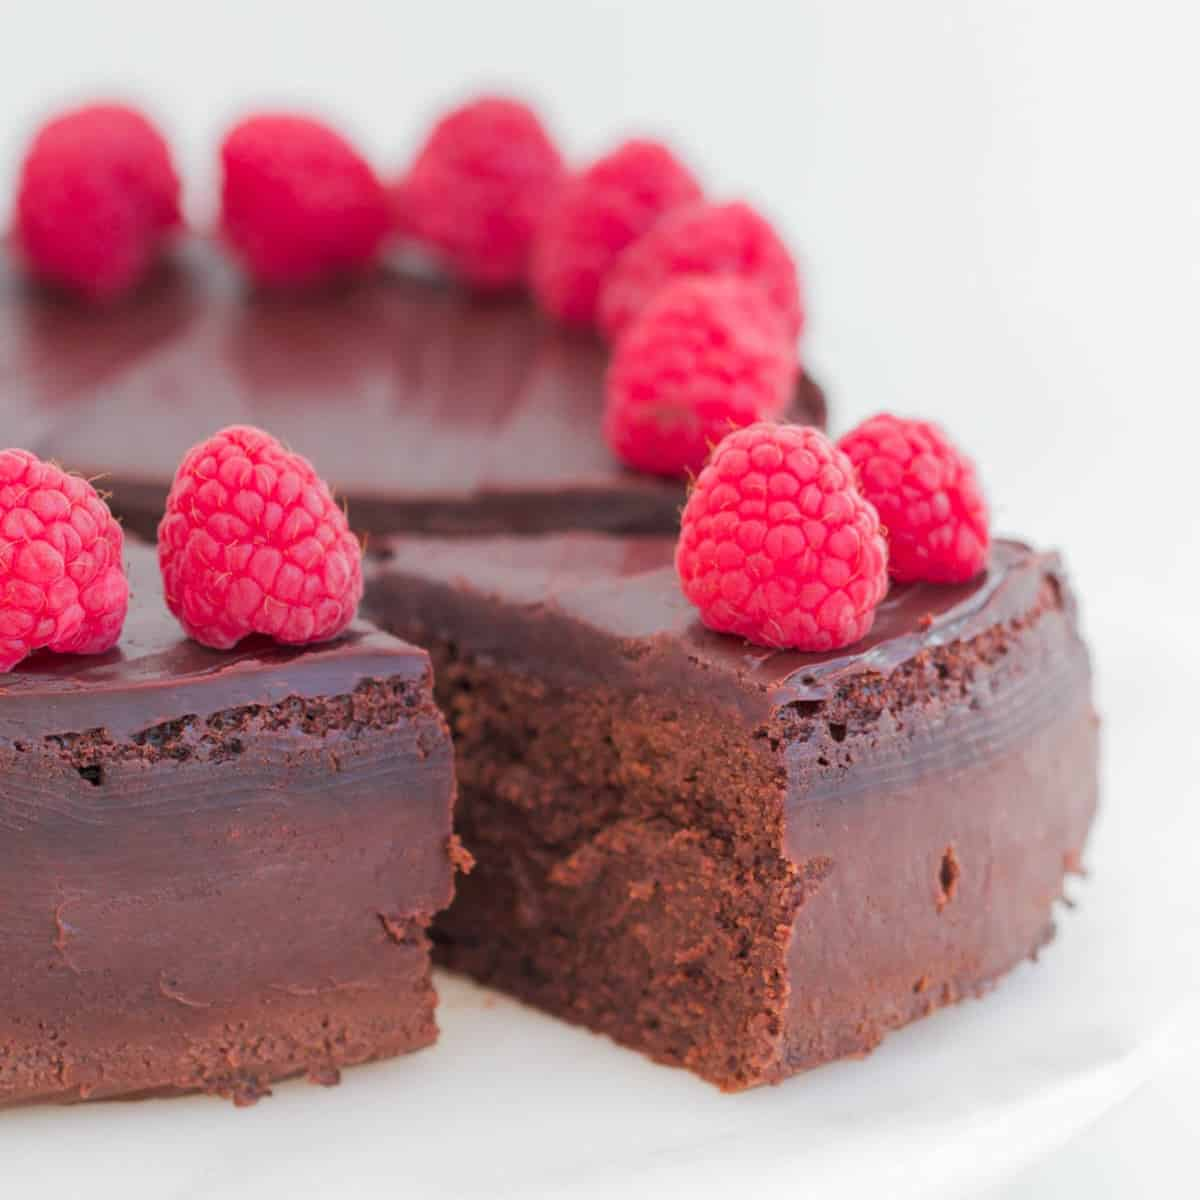 3 Ingredient Flourless Chocolate Cake Gluten Free Bake Play Smile